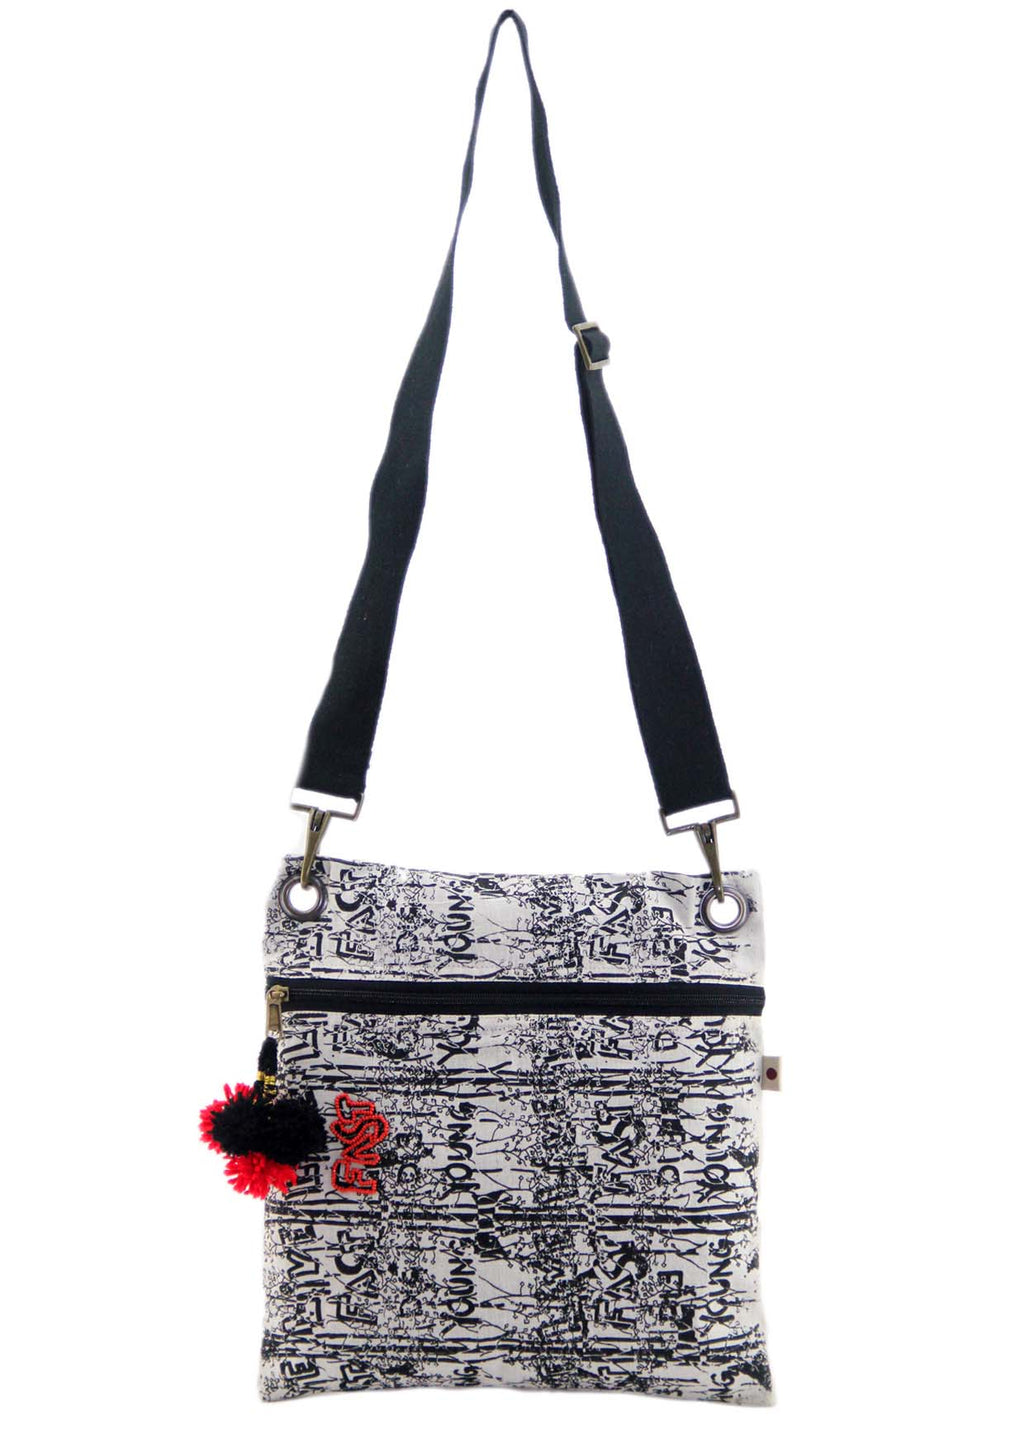 Organic cotton Doodle Sling Bag Large - VELOCE - Upasana Design Studio